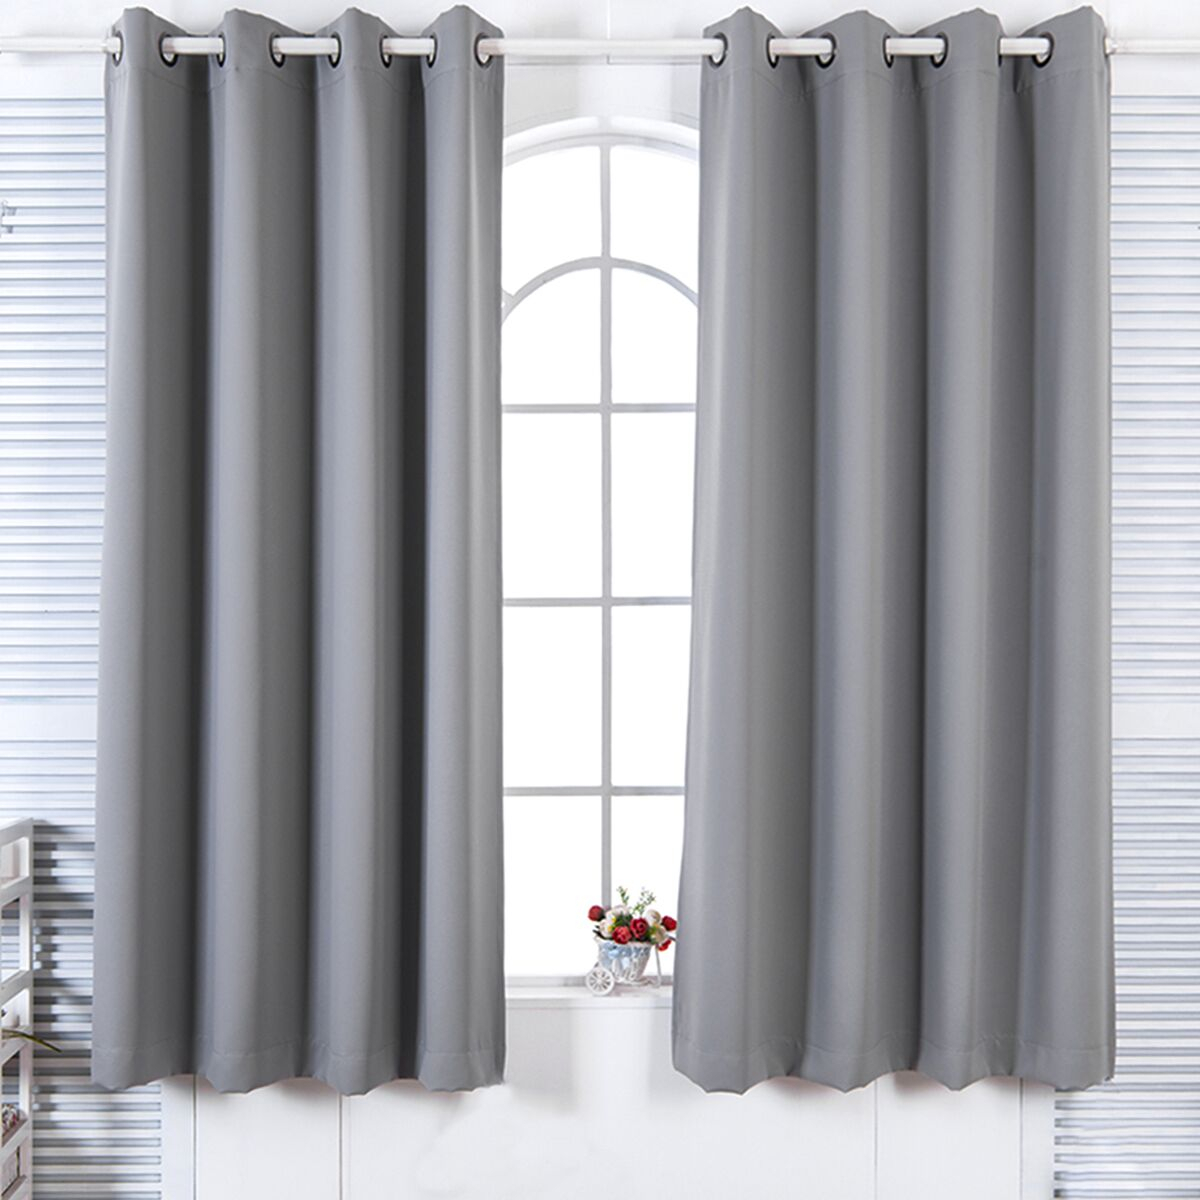 """Details About 84"""" Lamia Premium Solid Insulated Thermal Blackout Grommet Window Panelseleg Regarding Solid Insulated Thermal Blackout Curtain Panel Pairs (View 13 of 30)"""